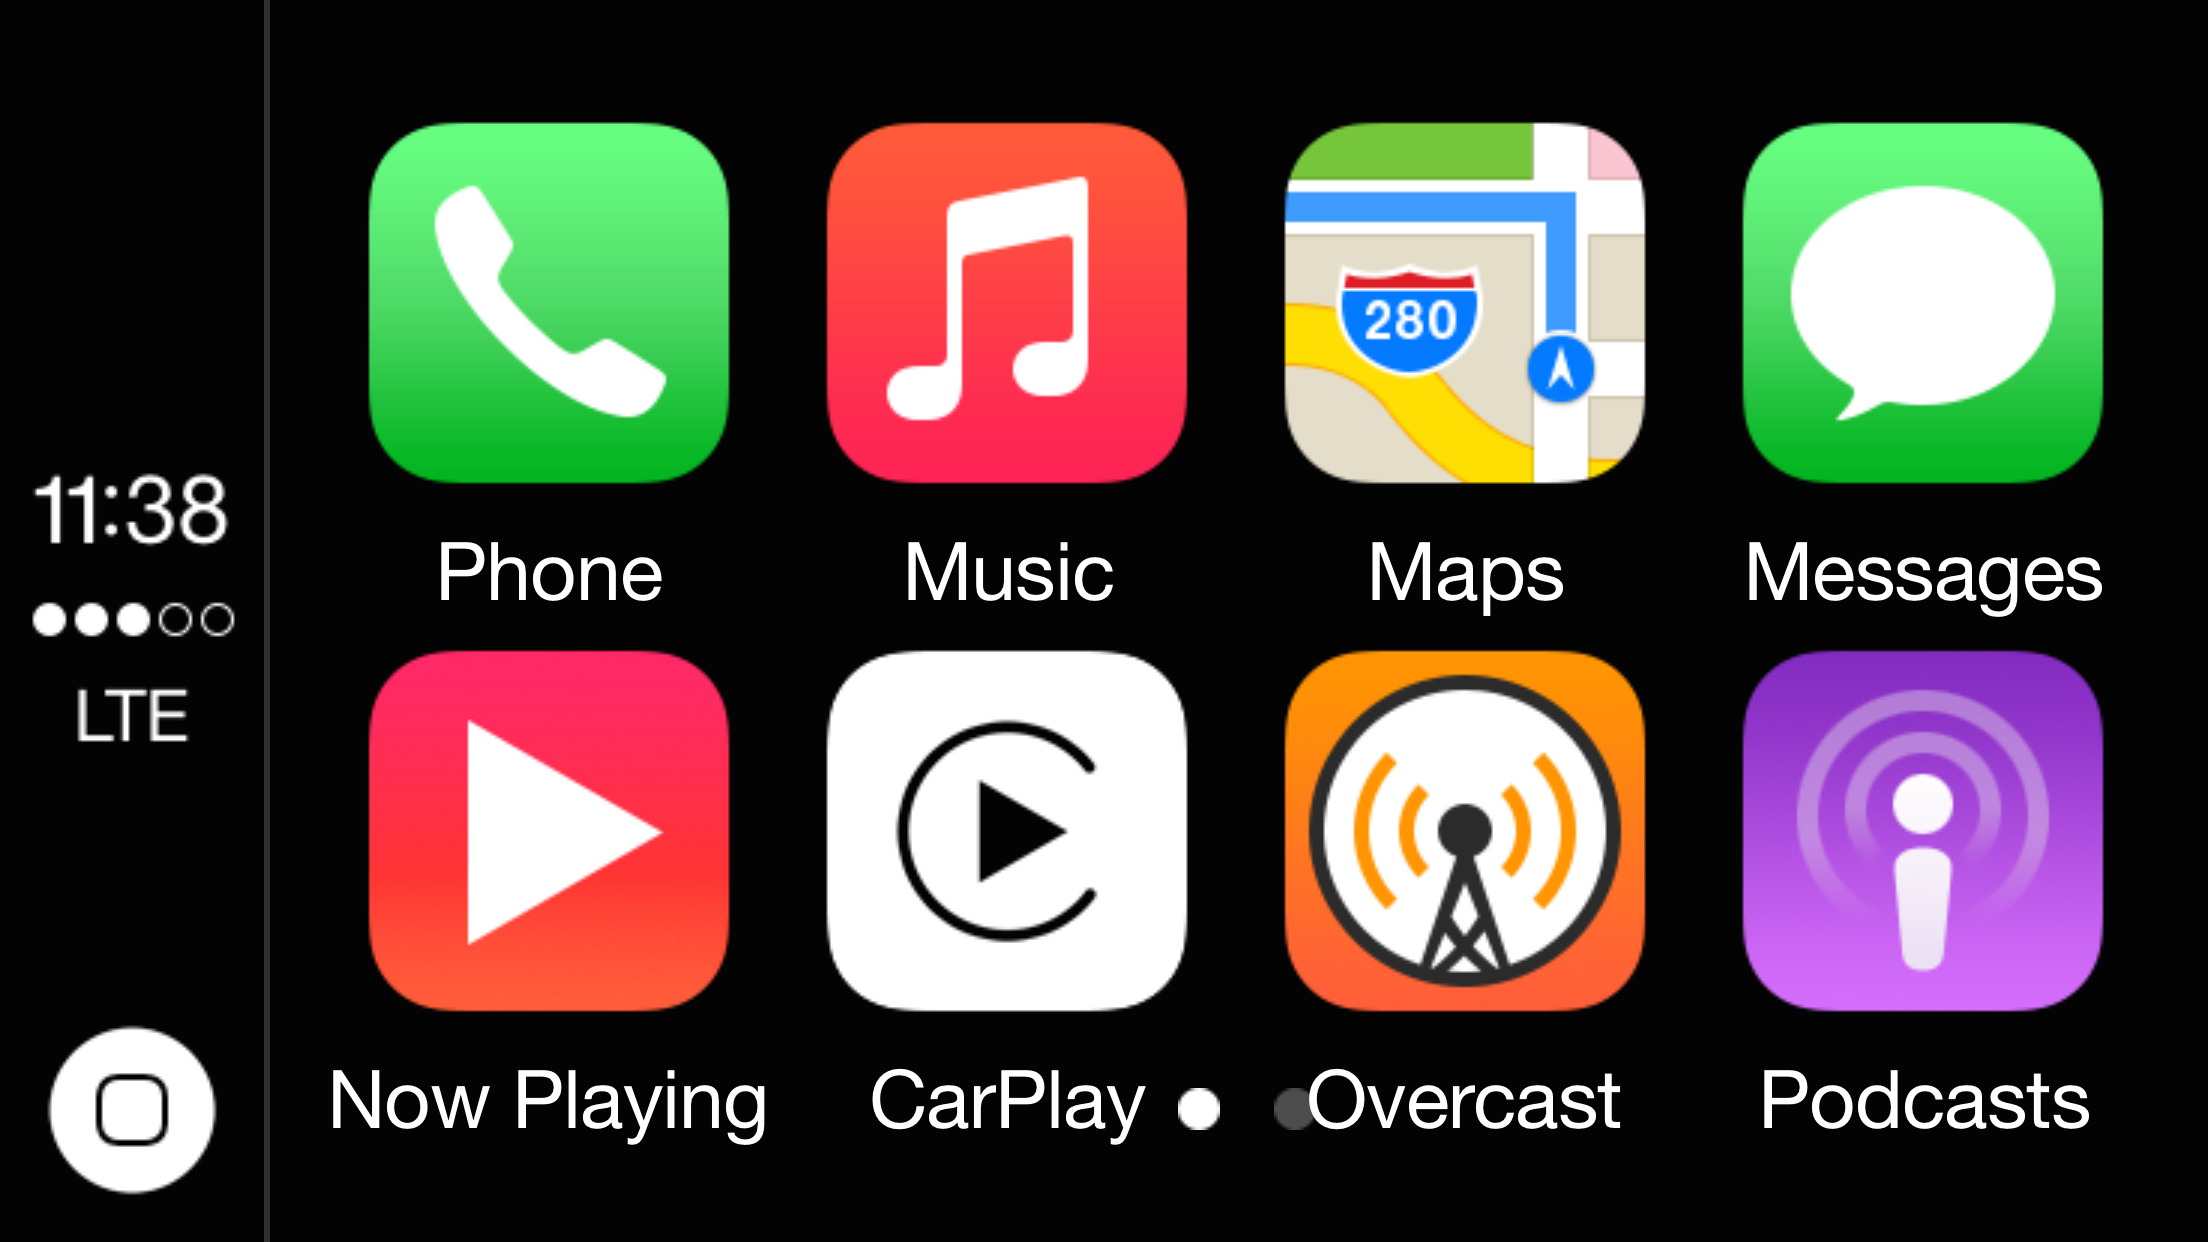 CarPlay Adam Bell 02